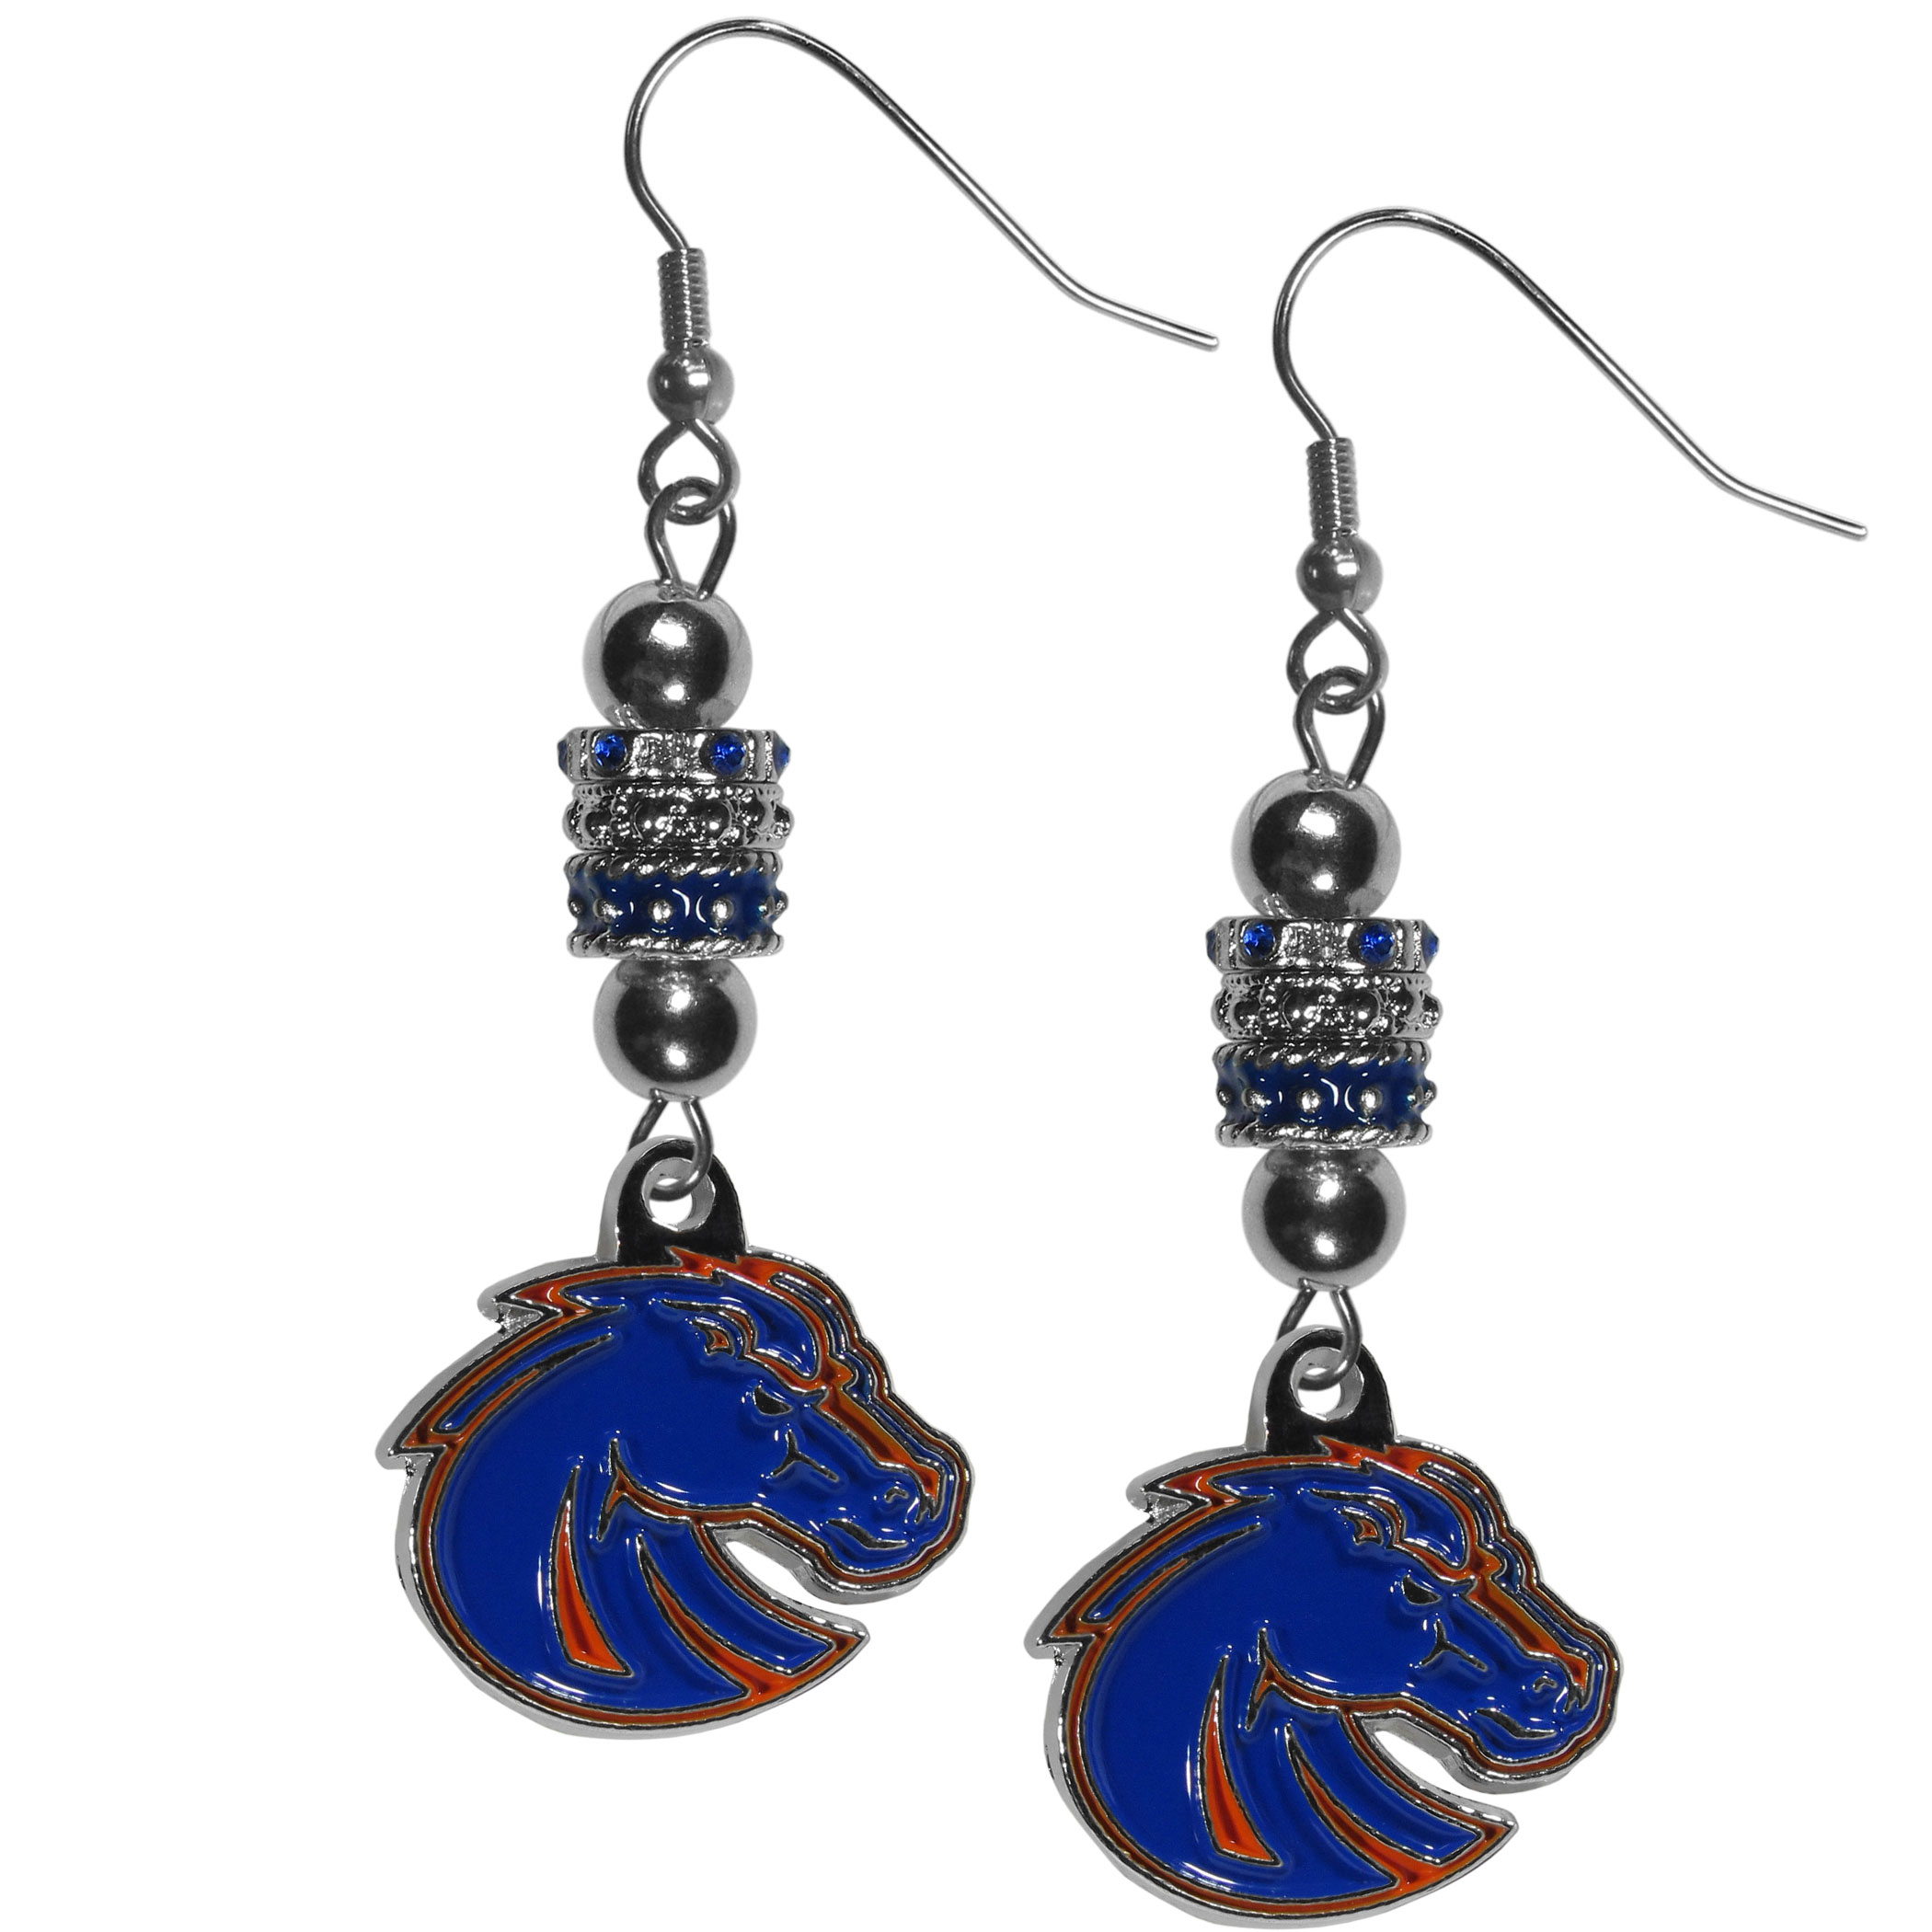 Boise St. Broncos Euro Bead Earrings - These beautiful euro style earrings feature 3 euro beads and a detailed Boise St. Broncos charm on hypoallergenic fishhook posts.